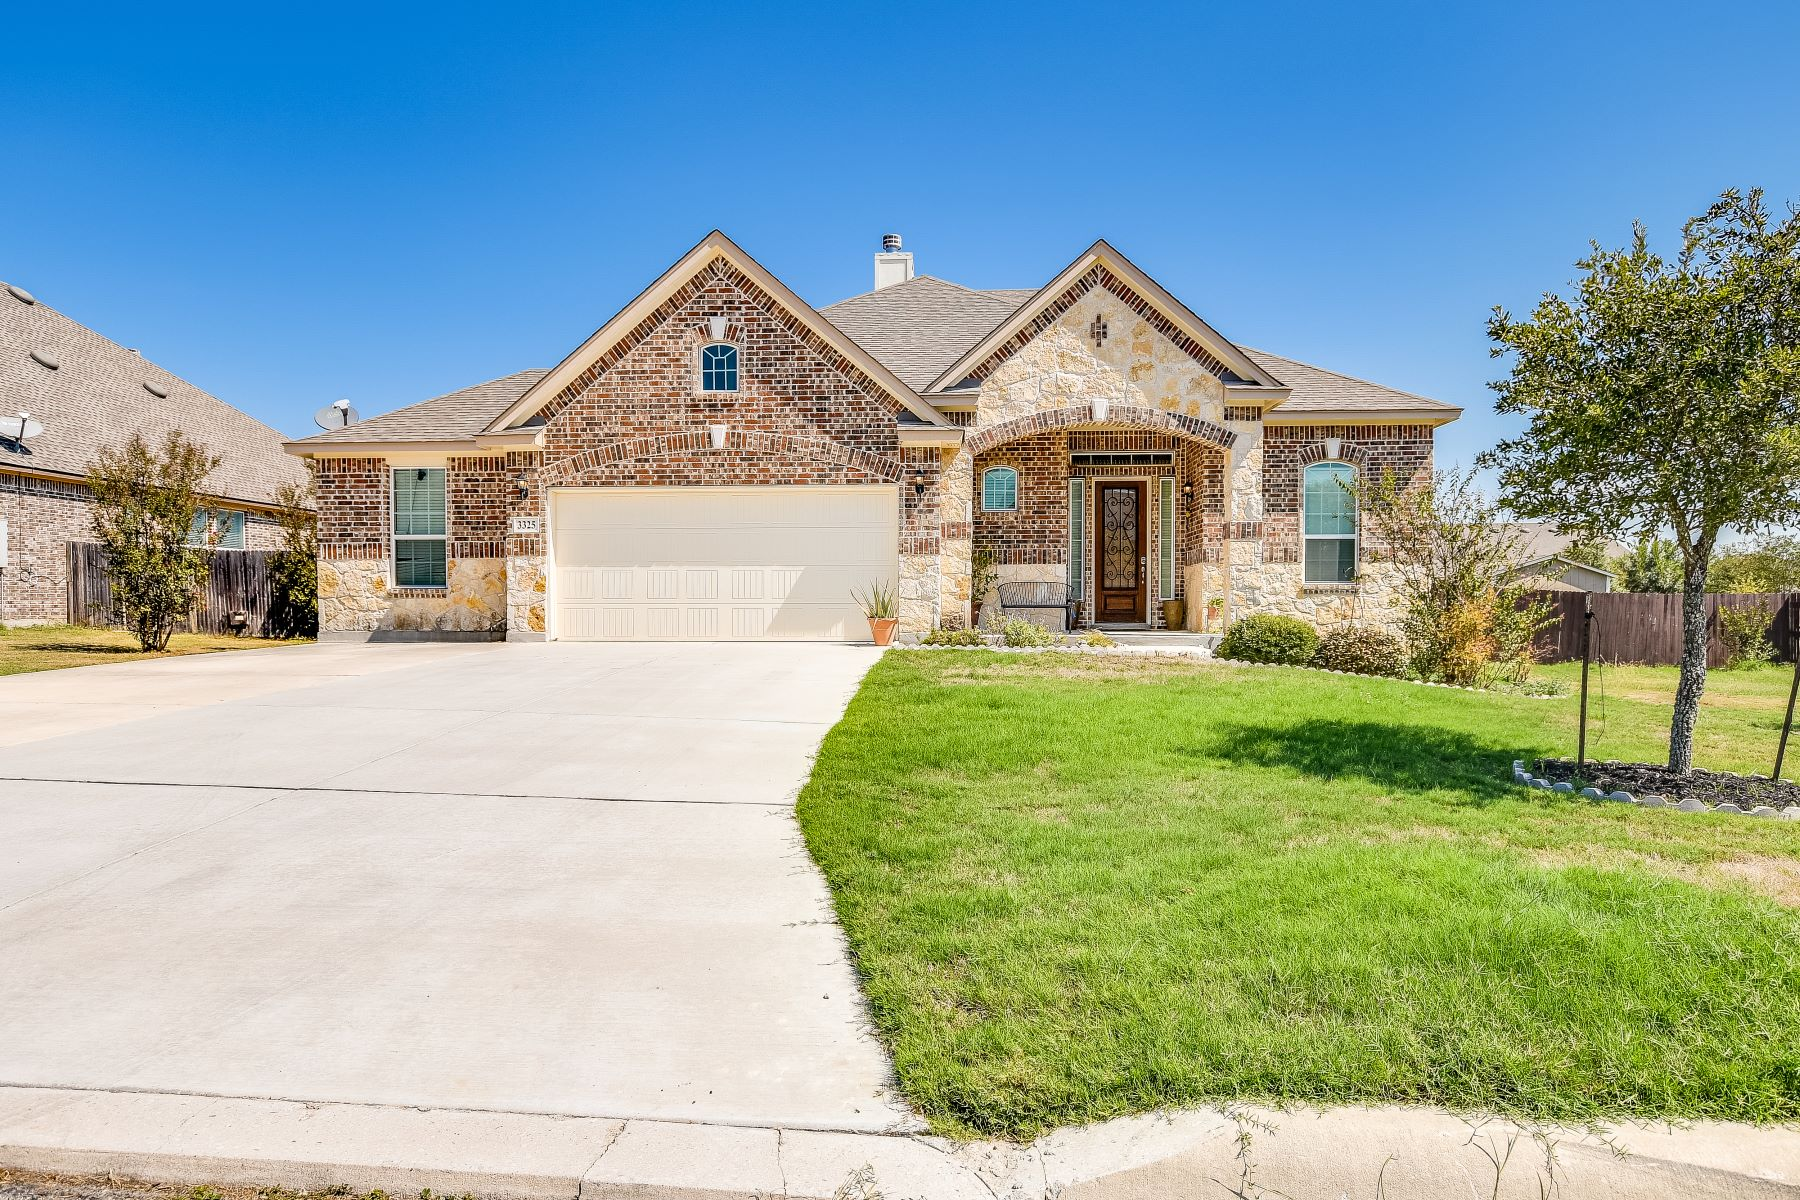 Single Family Homes for Sale at Beautiful Harvest Hills Home 3325 Joshs Way Marion, Texas 78124 United States